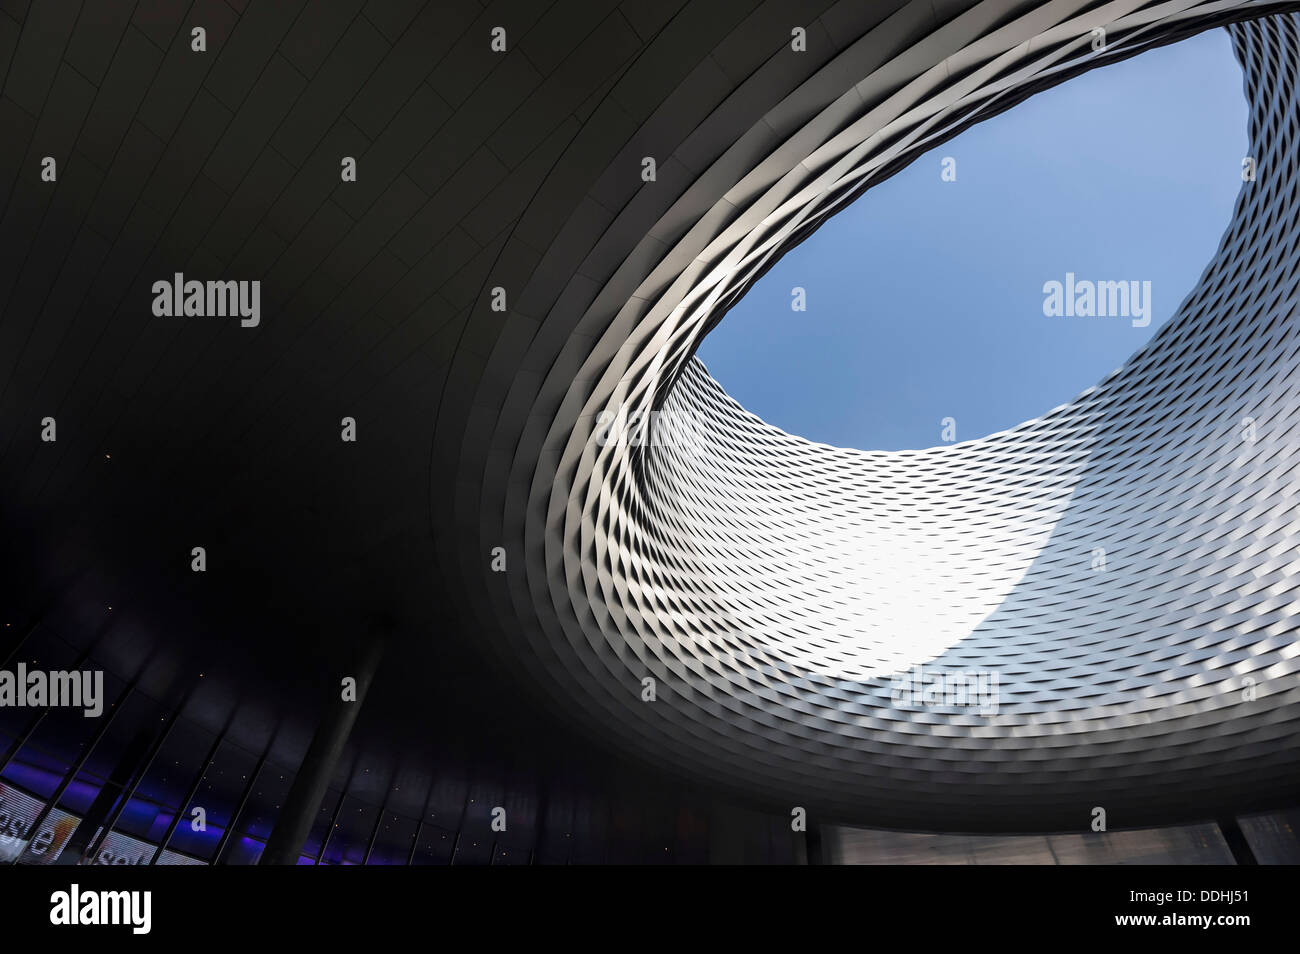 Hall ceiling, modern architecture, new construction of Messe Basel trade fair by architects Herzog and de Meuron - Stock Image